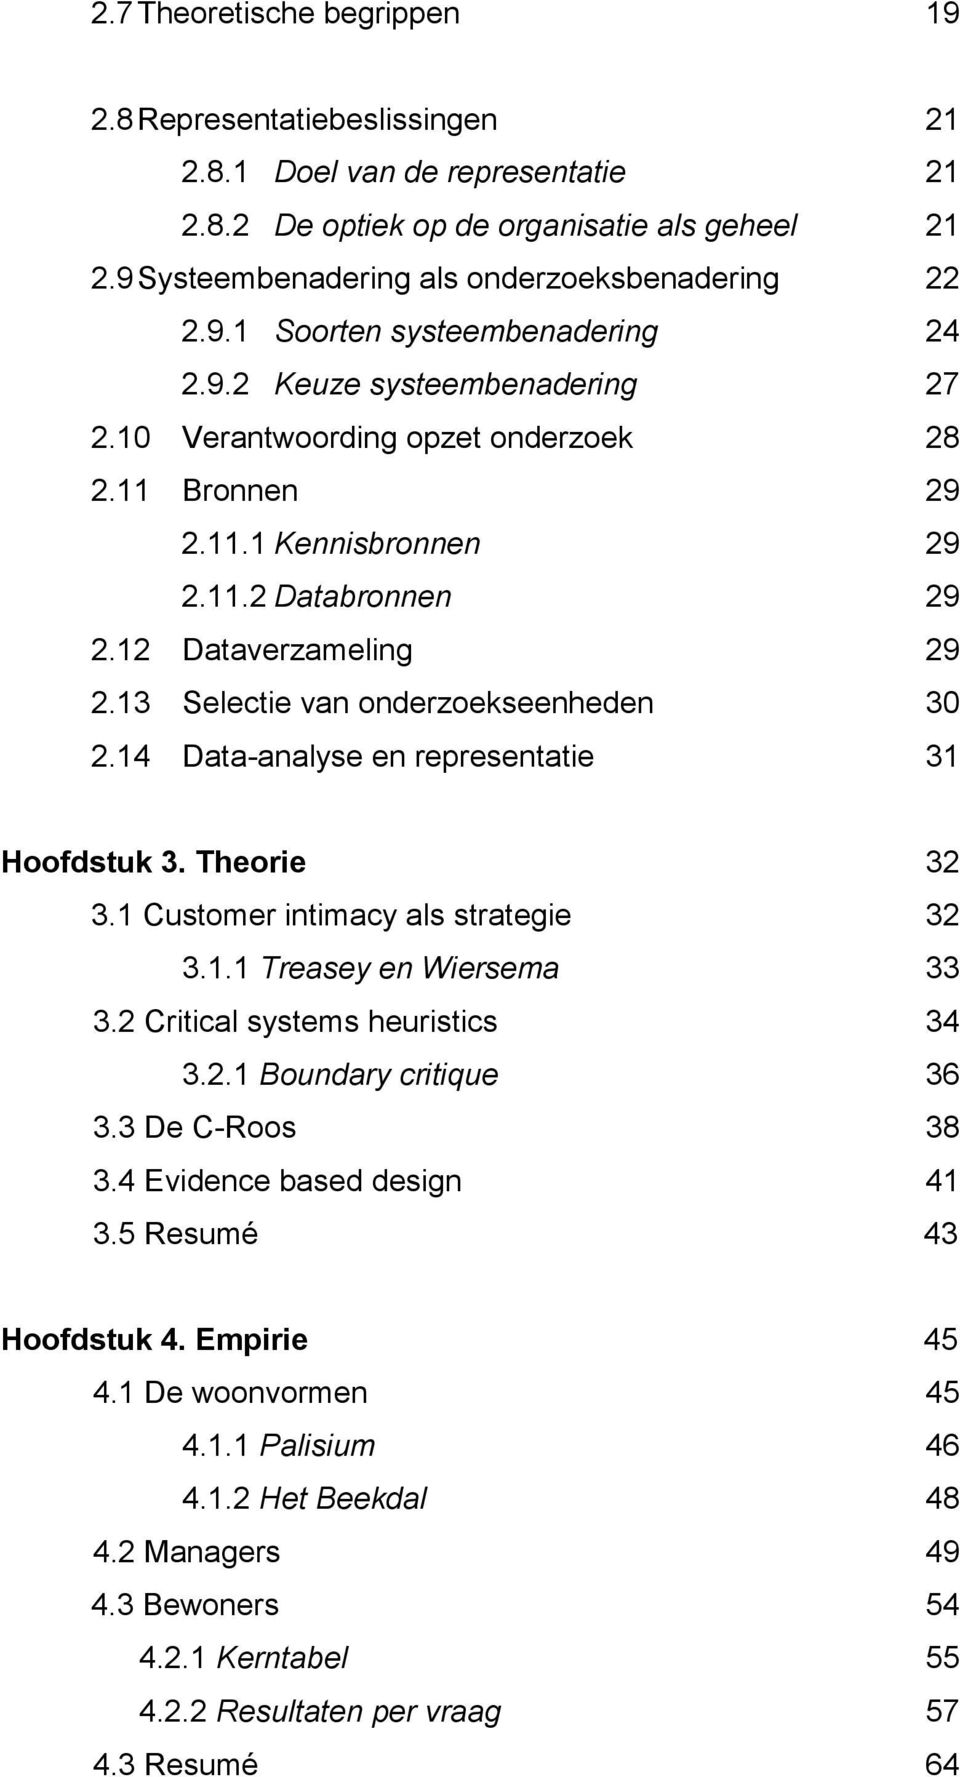 14 Data-analyse en representatie 31 Hoofdstuk 3. Theorie 32 3.1 Customer intimacy als strategie 32 3.1.1 Treasey en Wiersema 33 3.2 Critical systems heuristics 34 3.2.1 Boundary critique 36 3.